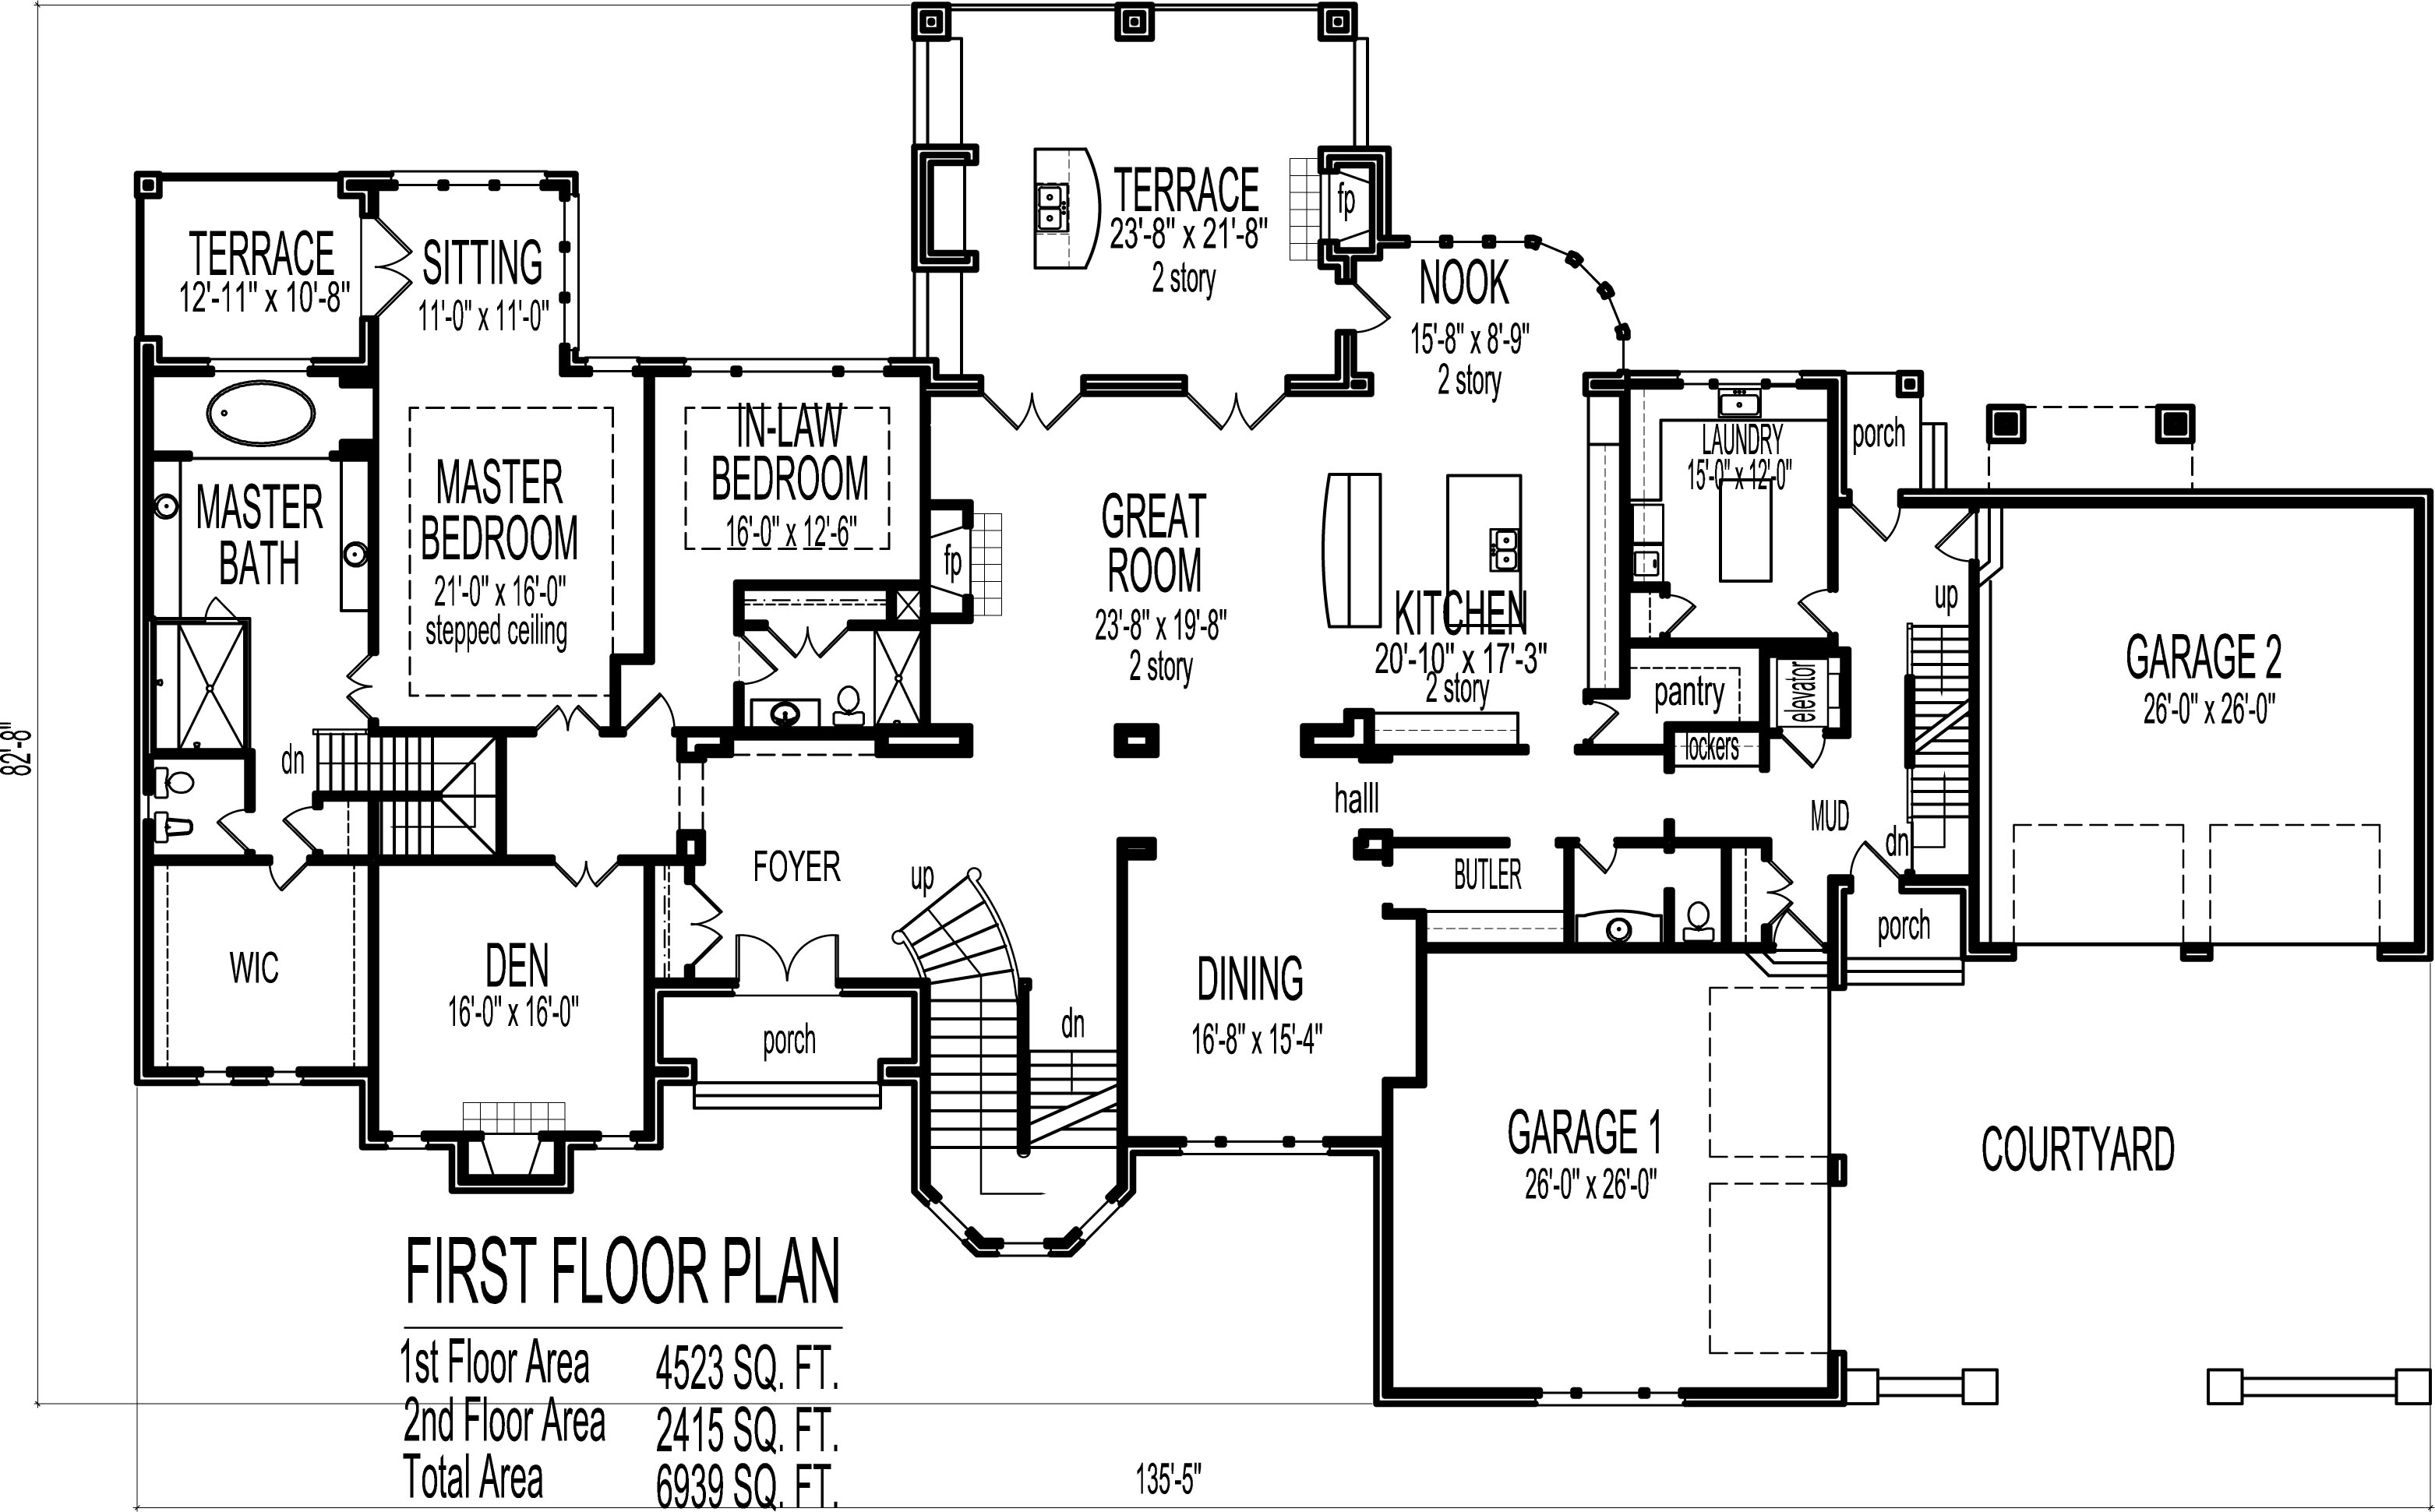 Dream house floor plans blueprints 2 story 5 bedroom large for 5 bedroom house plan designs